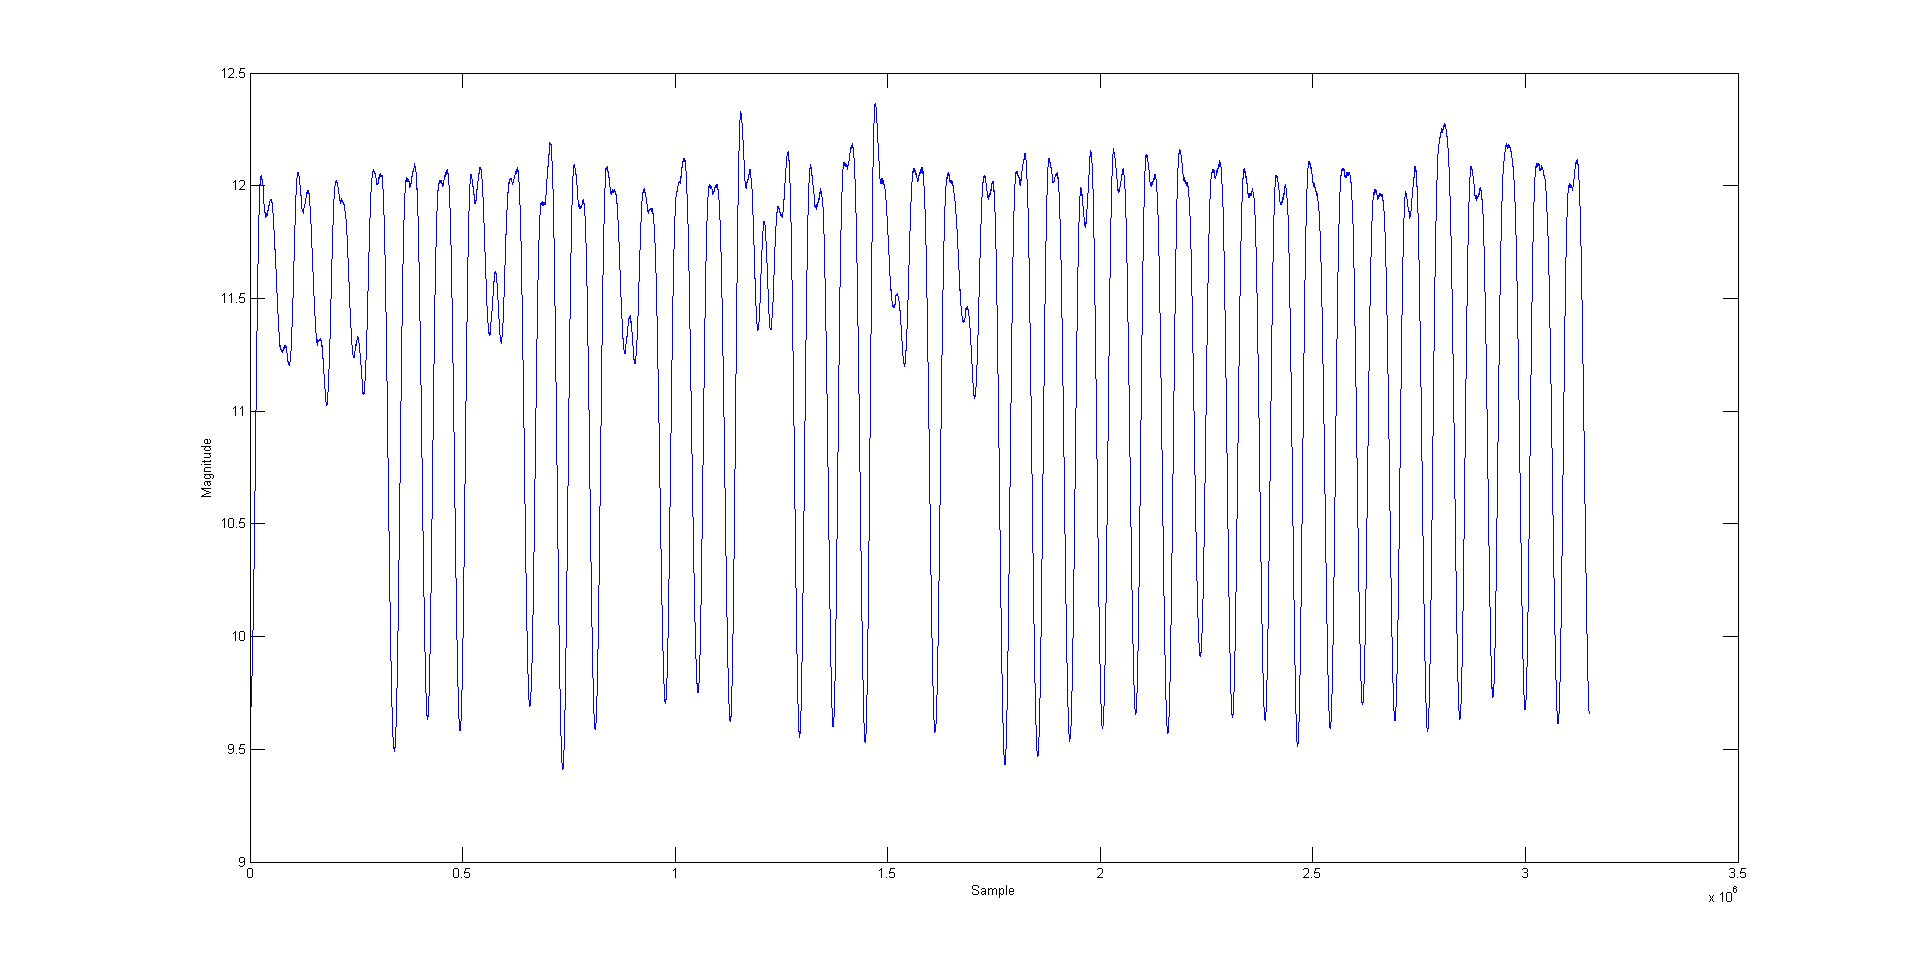 3.3.2 Summary In conclusion, the window size and the number of pre-calculations vary as a function of the key length.